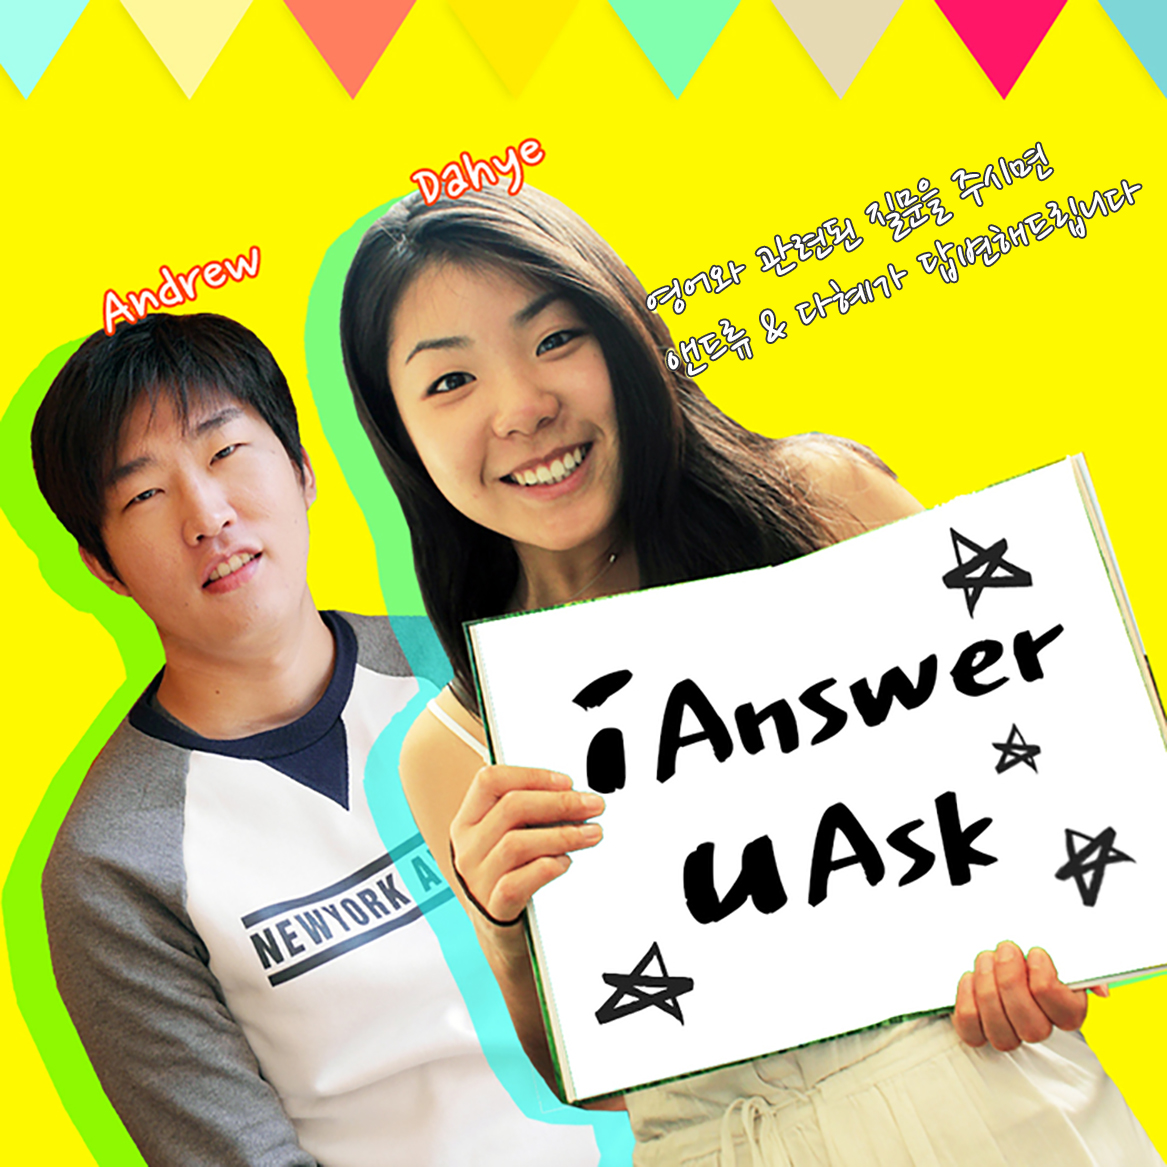 iAnswer uAsk